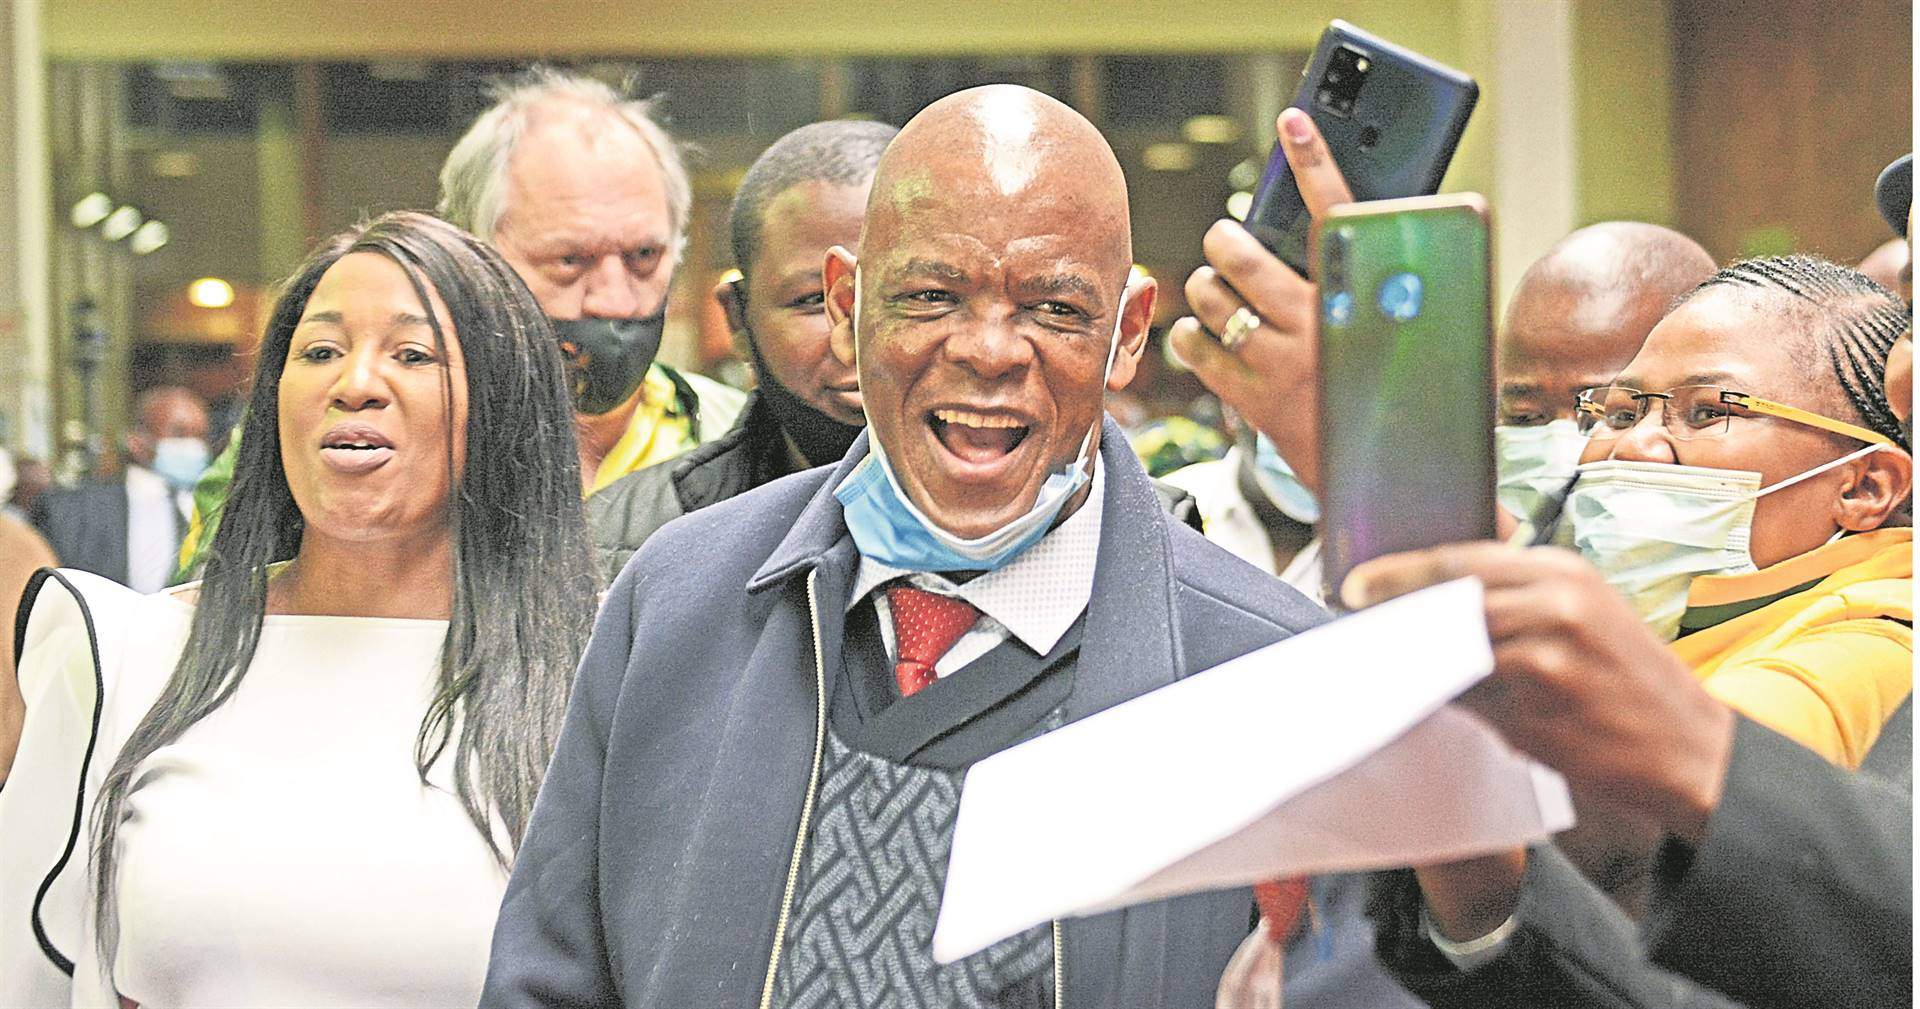 Suspended ANC secretary general Ace Magashule was at the Pietermaritzburg High Court on Monday to lend support to former president Jacob Zuma.